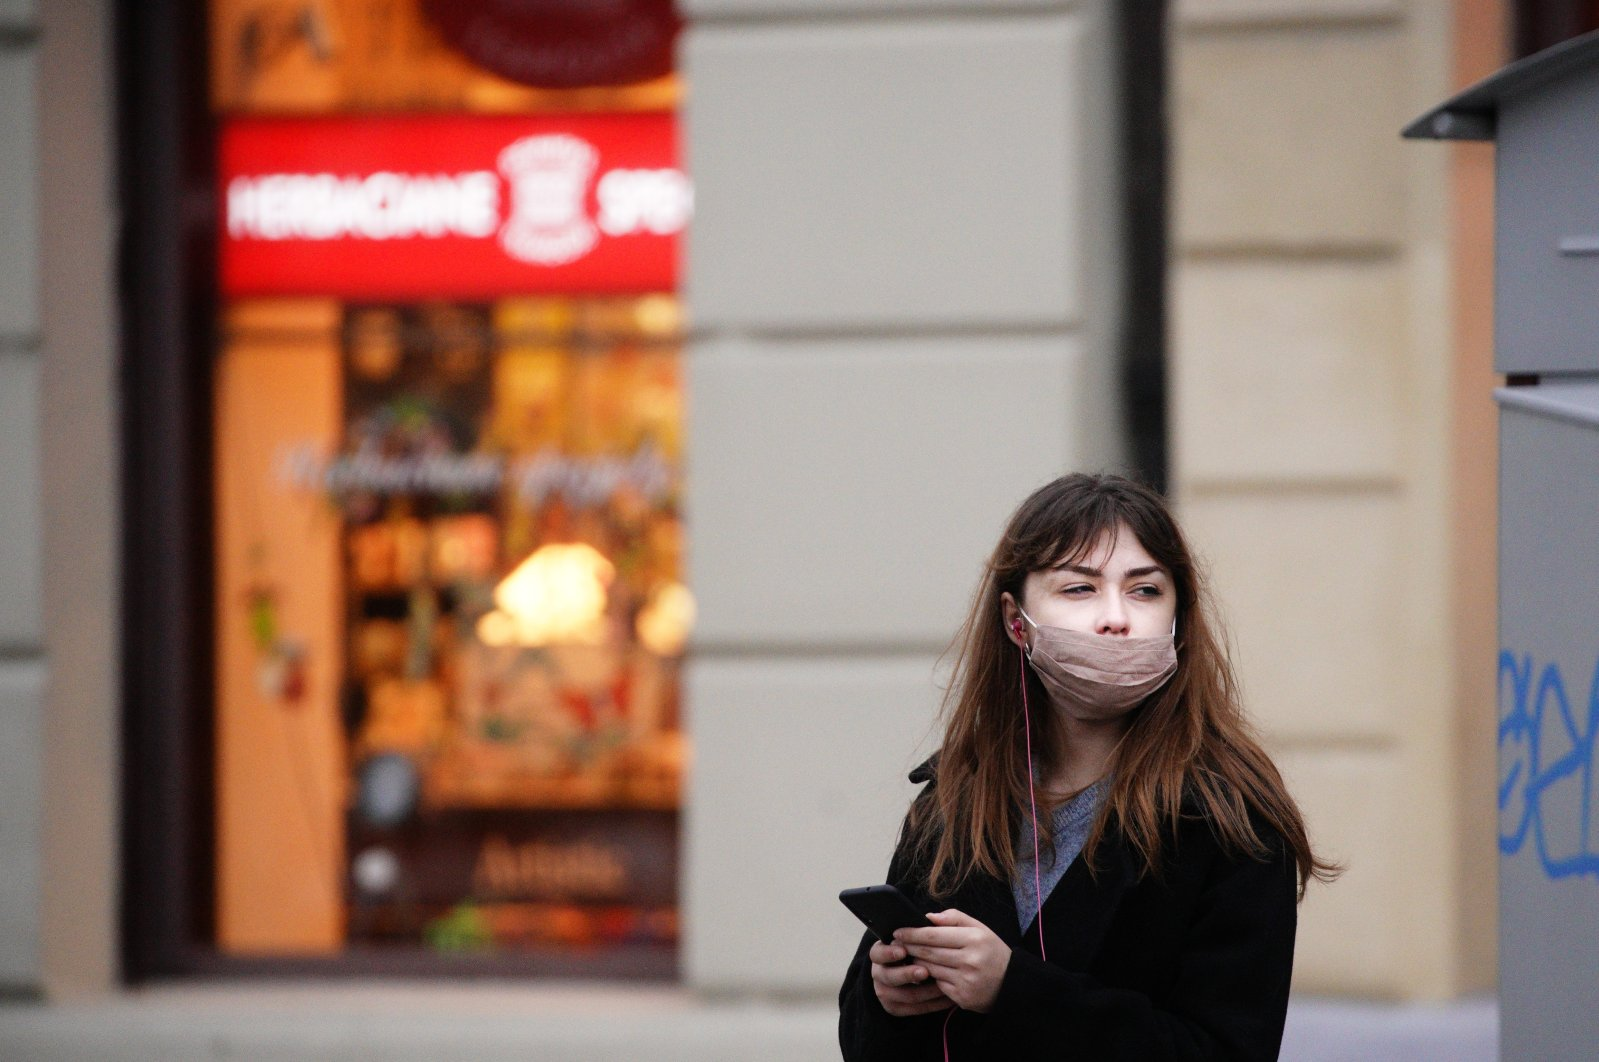 A woman wearing a face mask uses her mobile phone while waiting at a bus stop in Warsaw, Poland on October 2, 2020. (Reuters Photo)